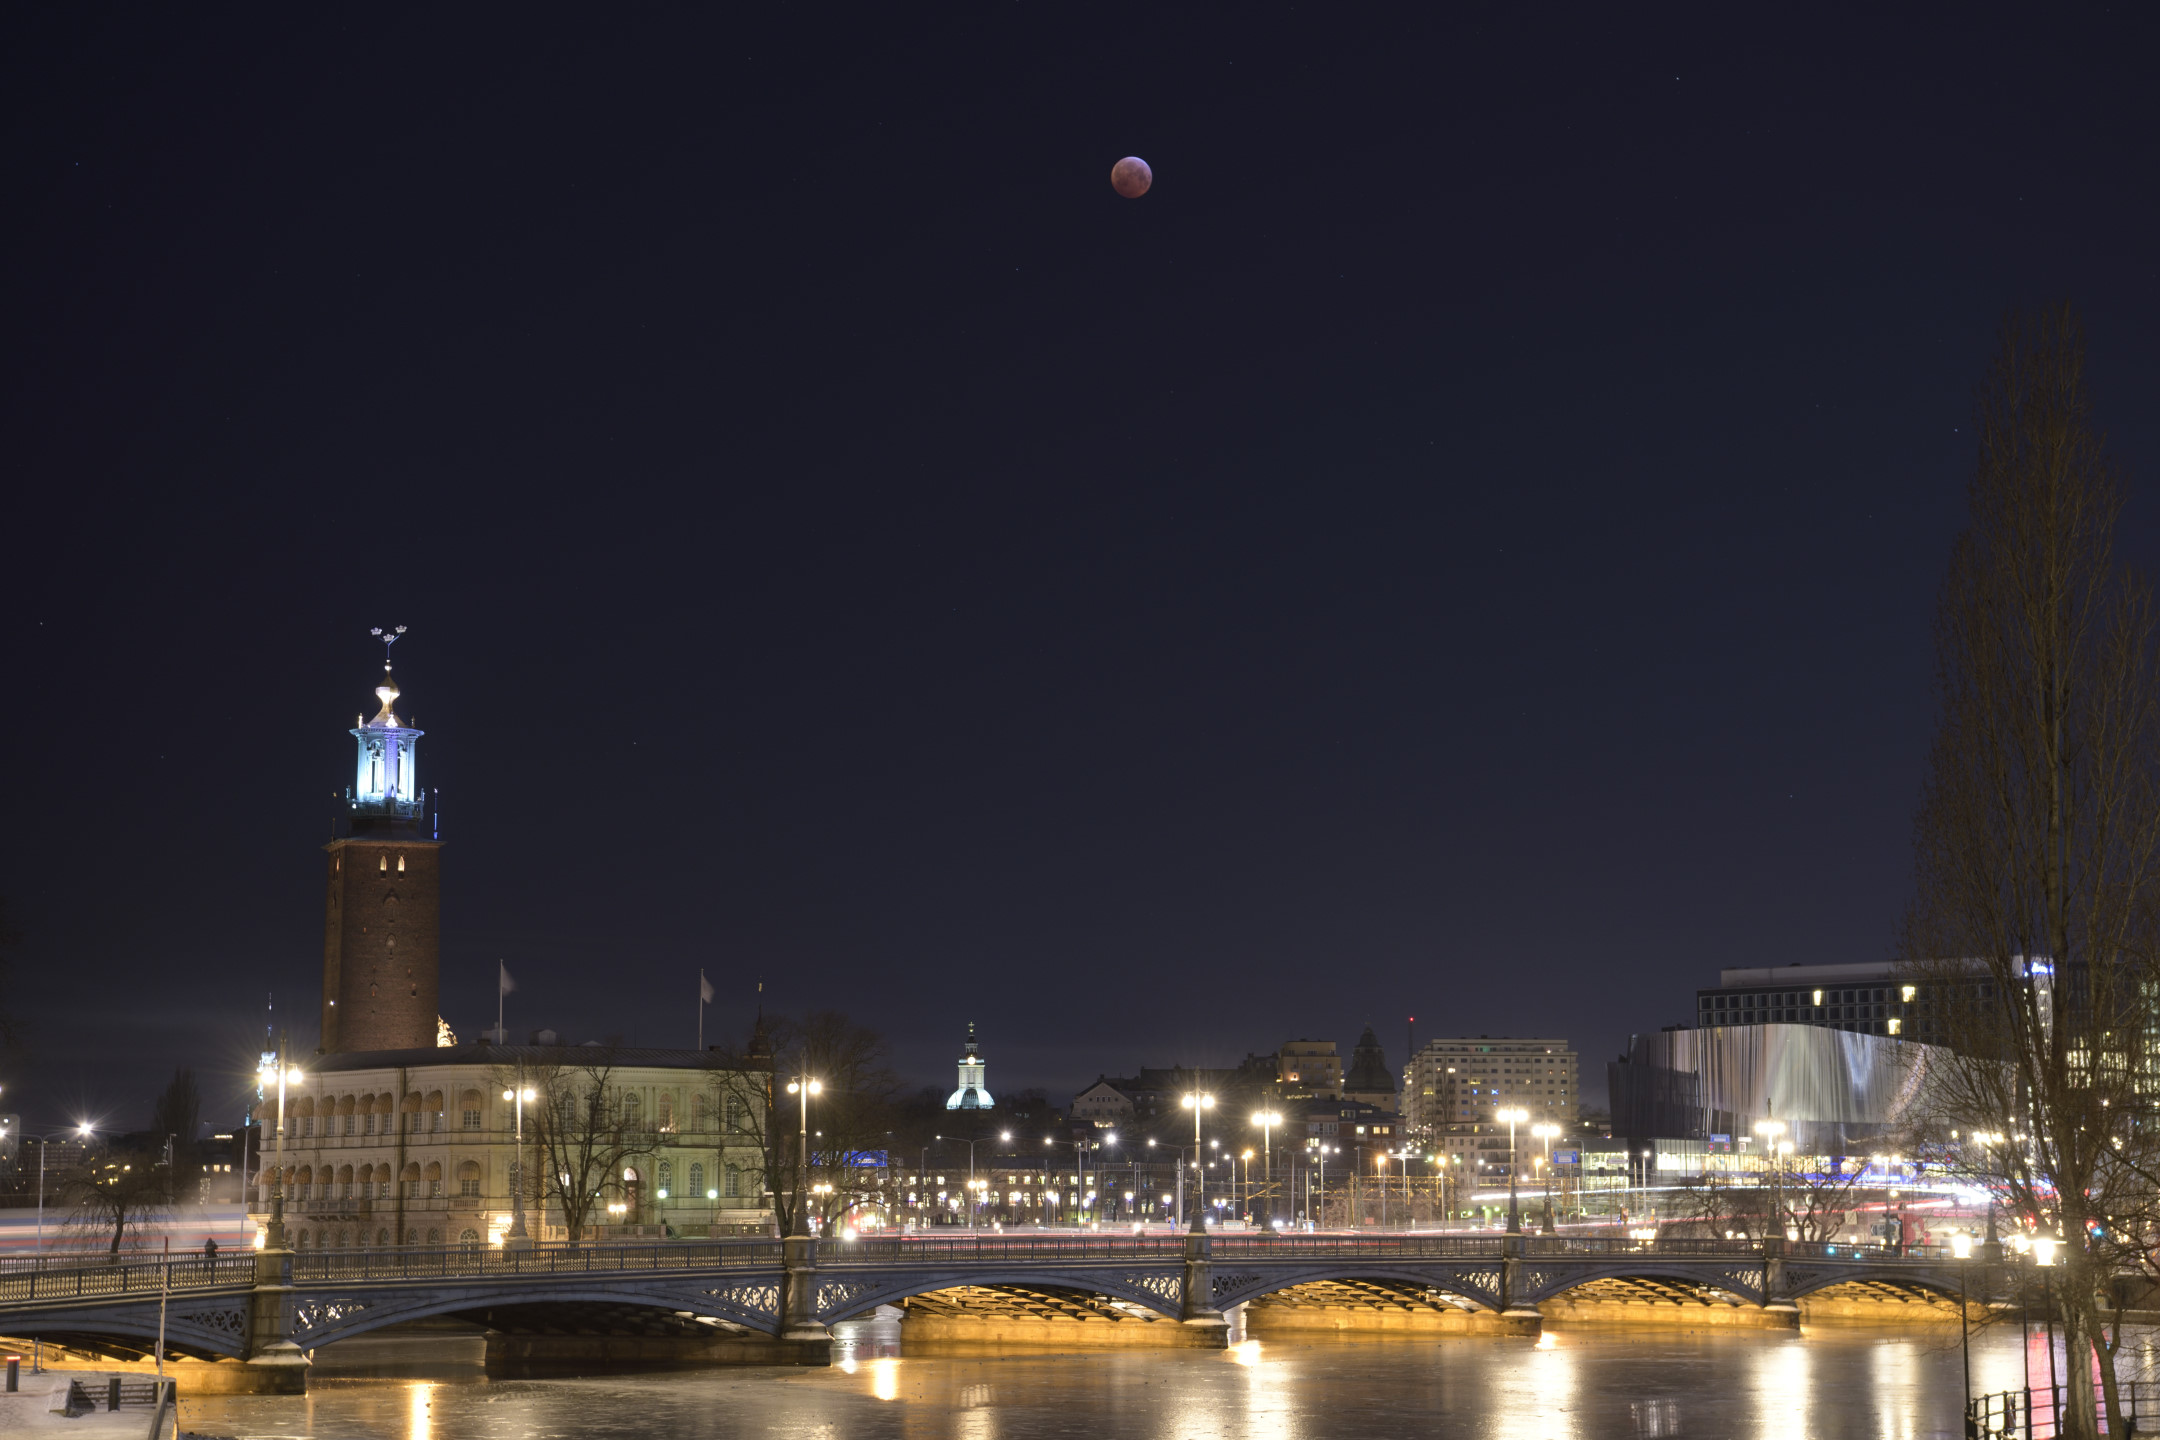 Lunar Eclipse 2019 by Magnus Norden